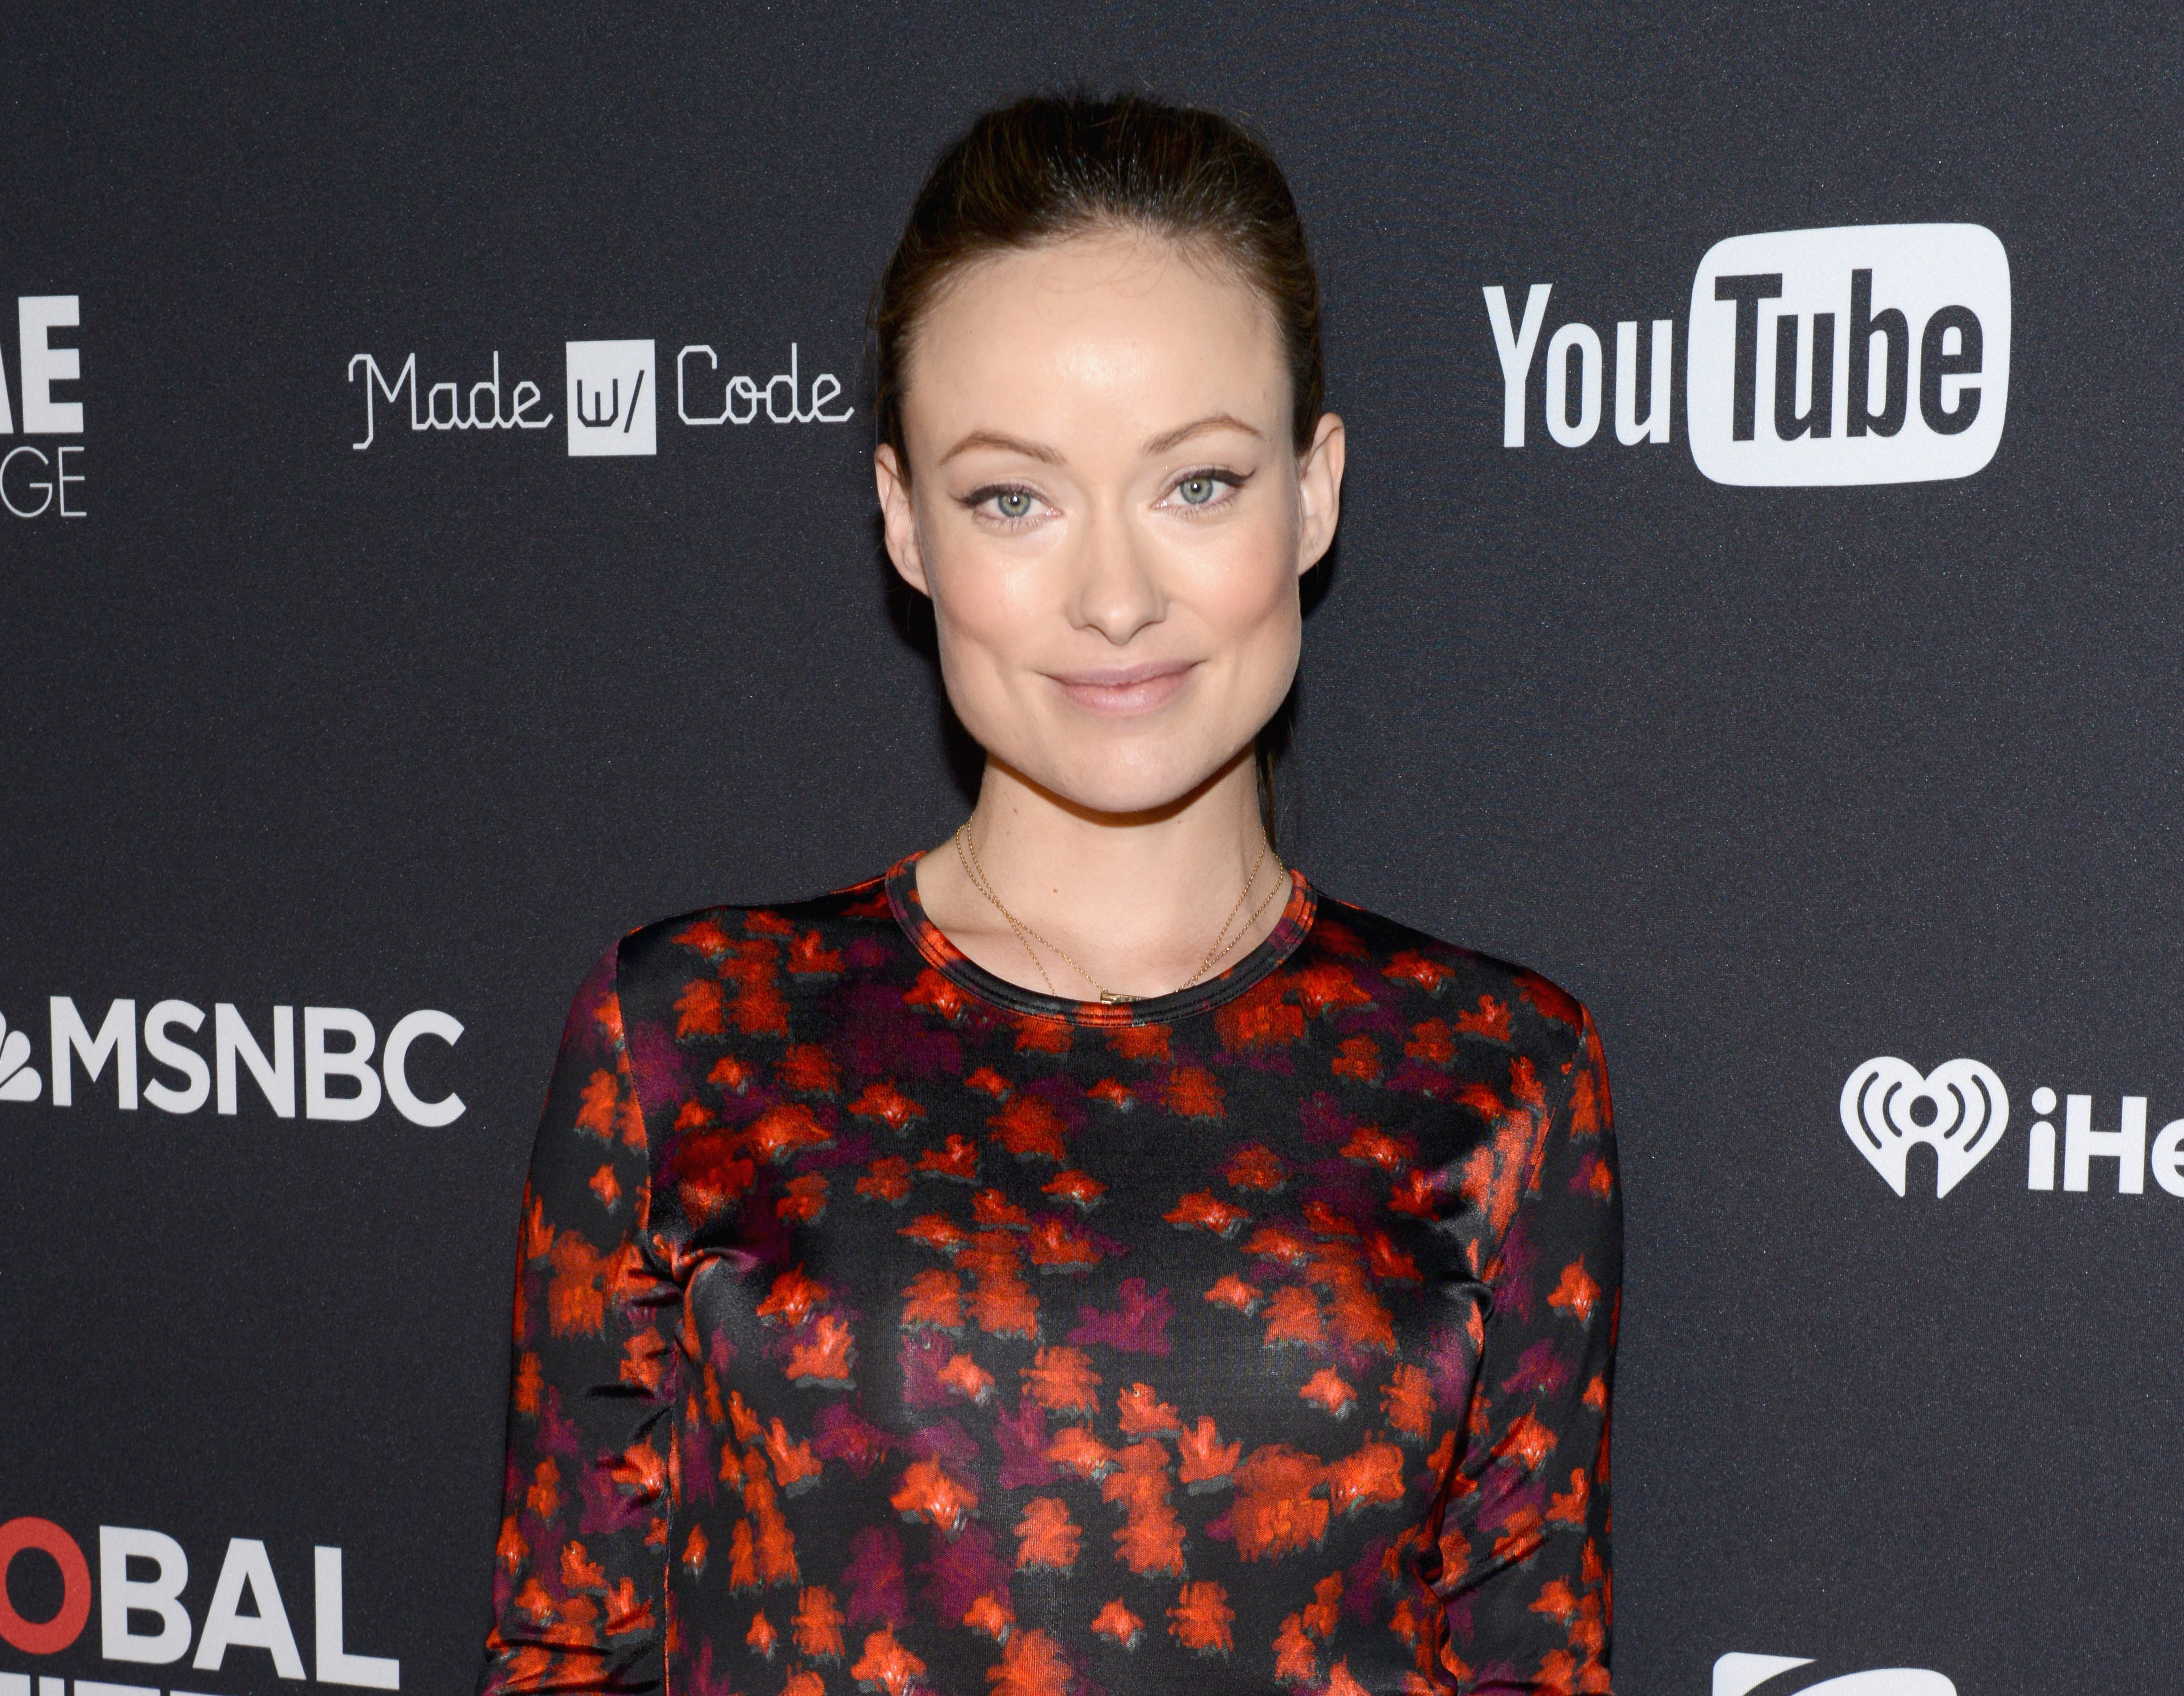 Olivia Wilde (a pregnant woman) revealed exactly what it's like being stalked by male photographers she doesn't know